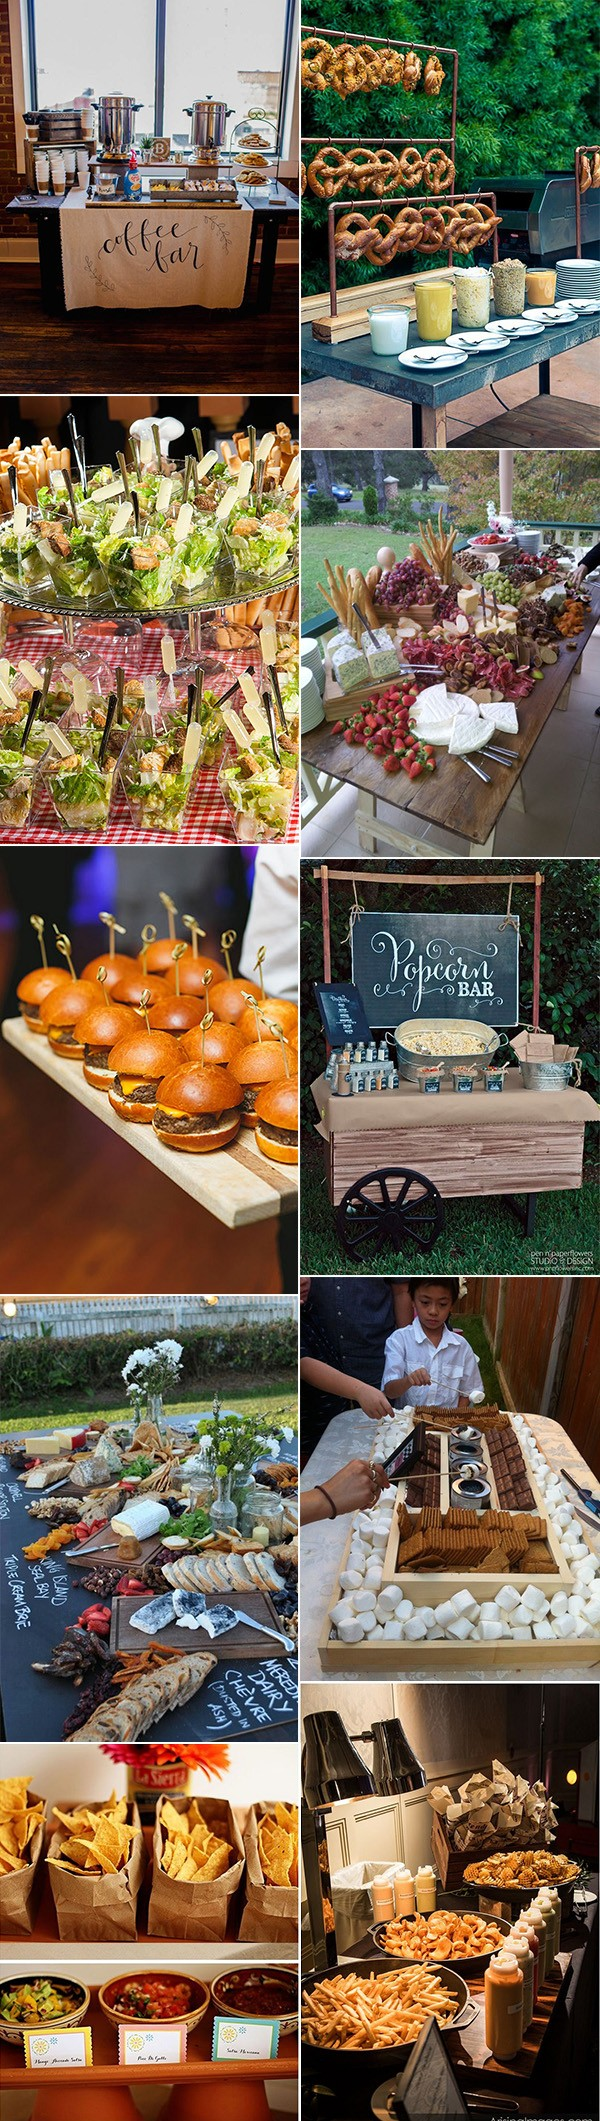 Wedding Buffets Ideas.20 Great Wedding Food Station Ideas For Your Reception